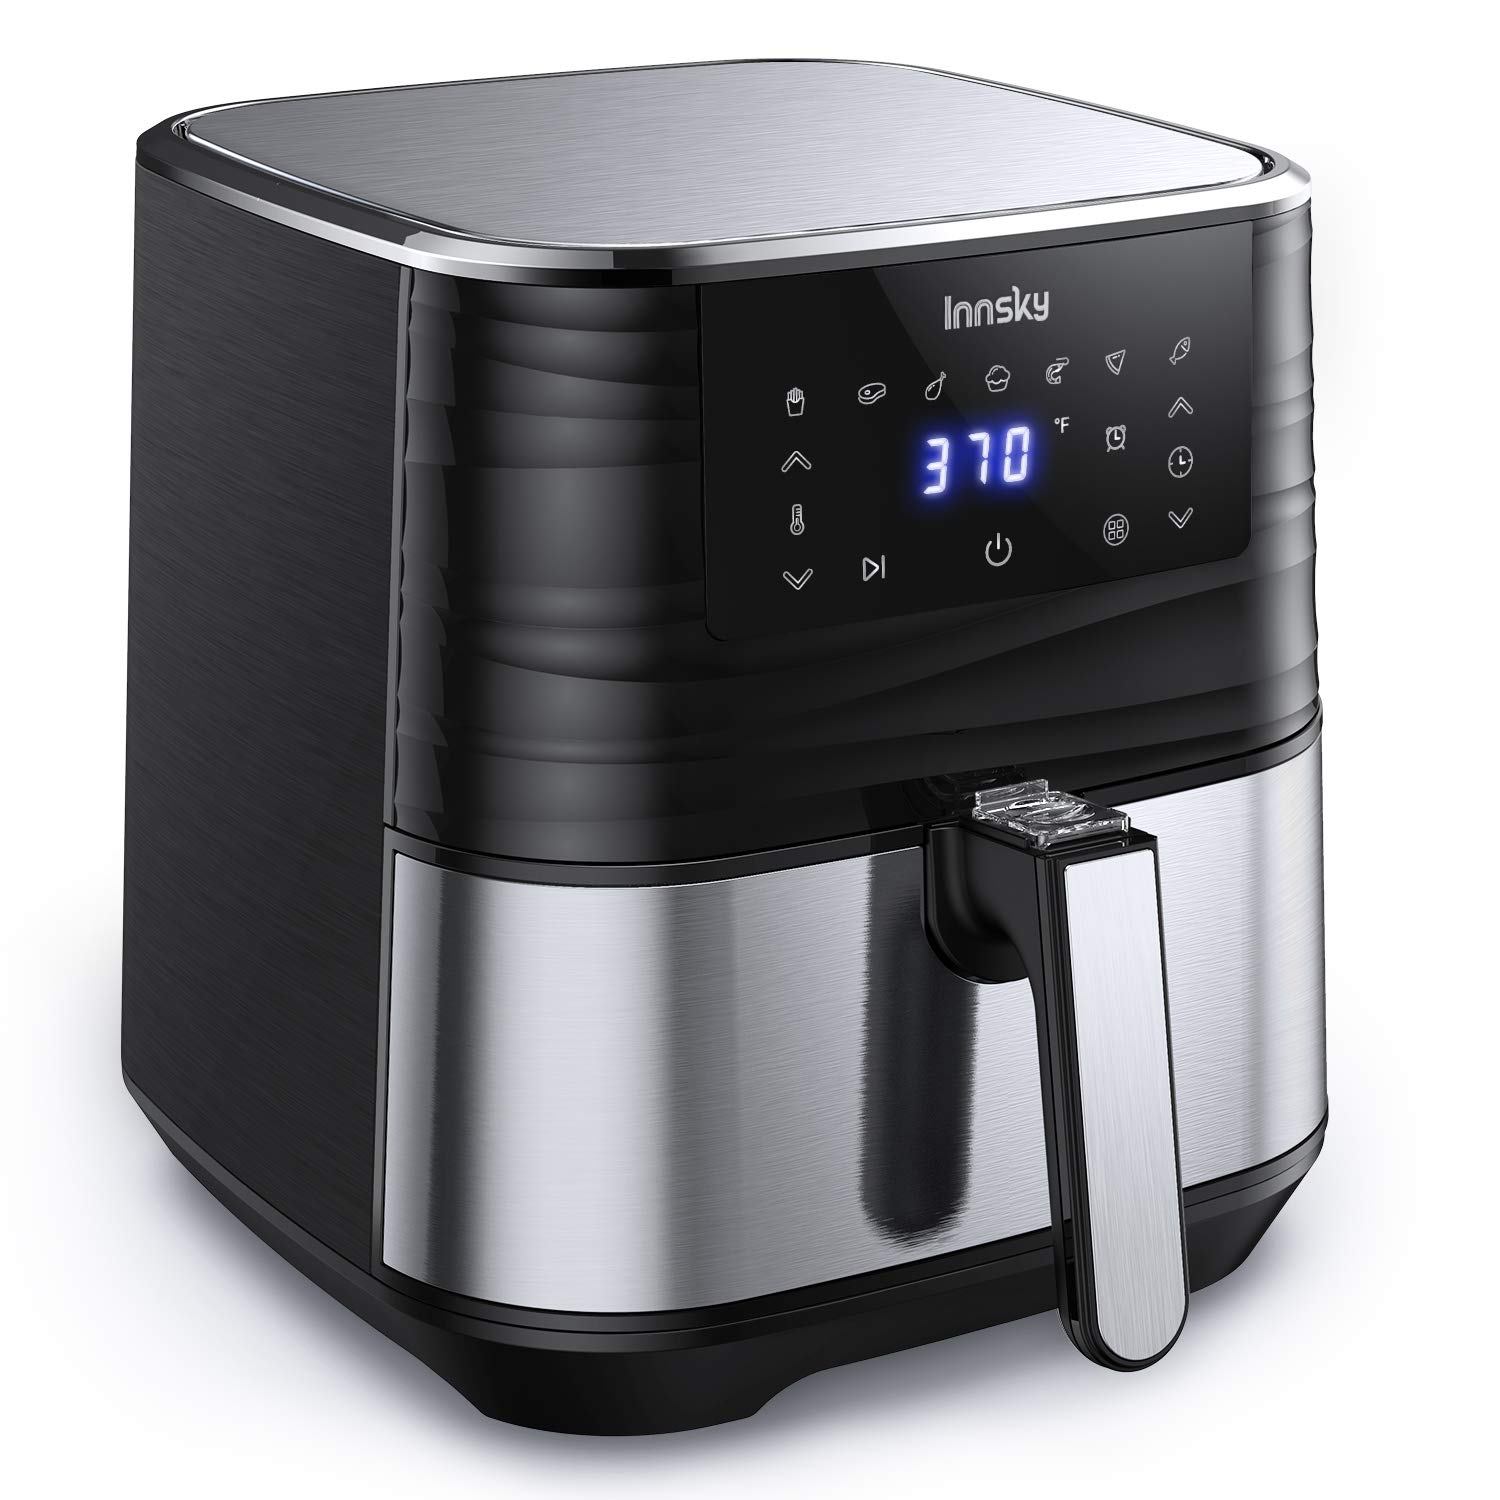 Innsky Air Fryer 58 Quart 1700Watt Electric Stainless Steel Air Fryers Oven for